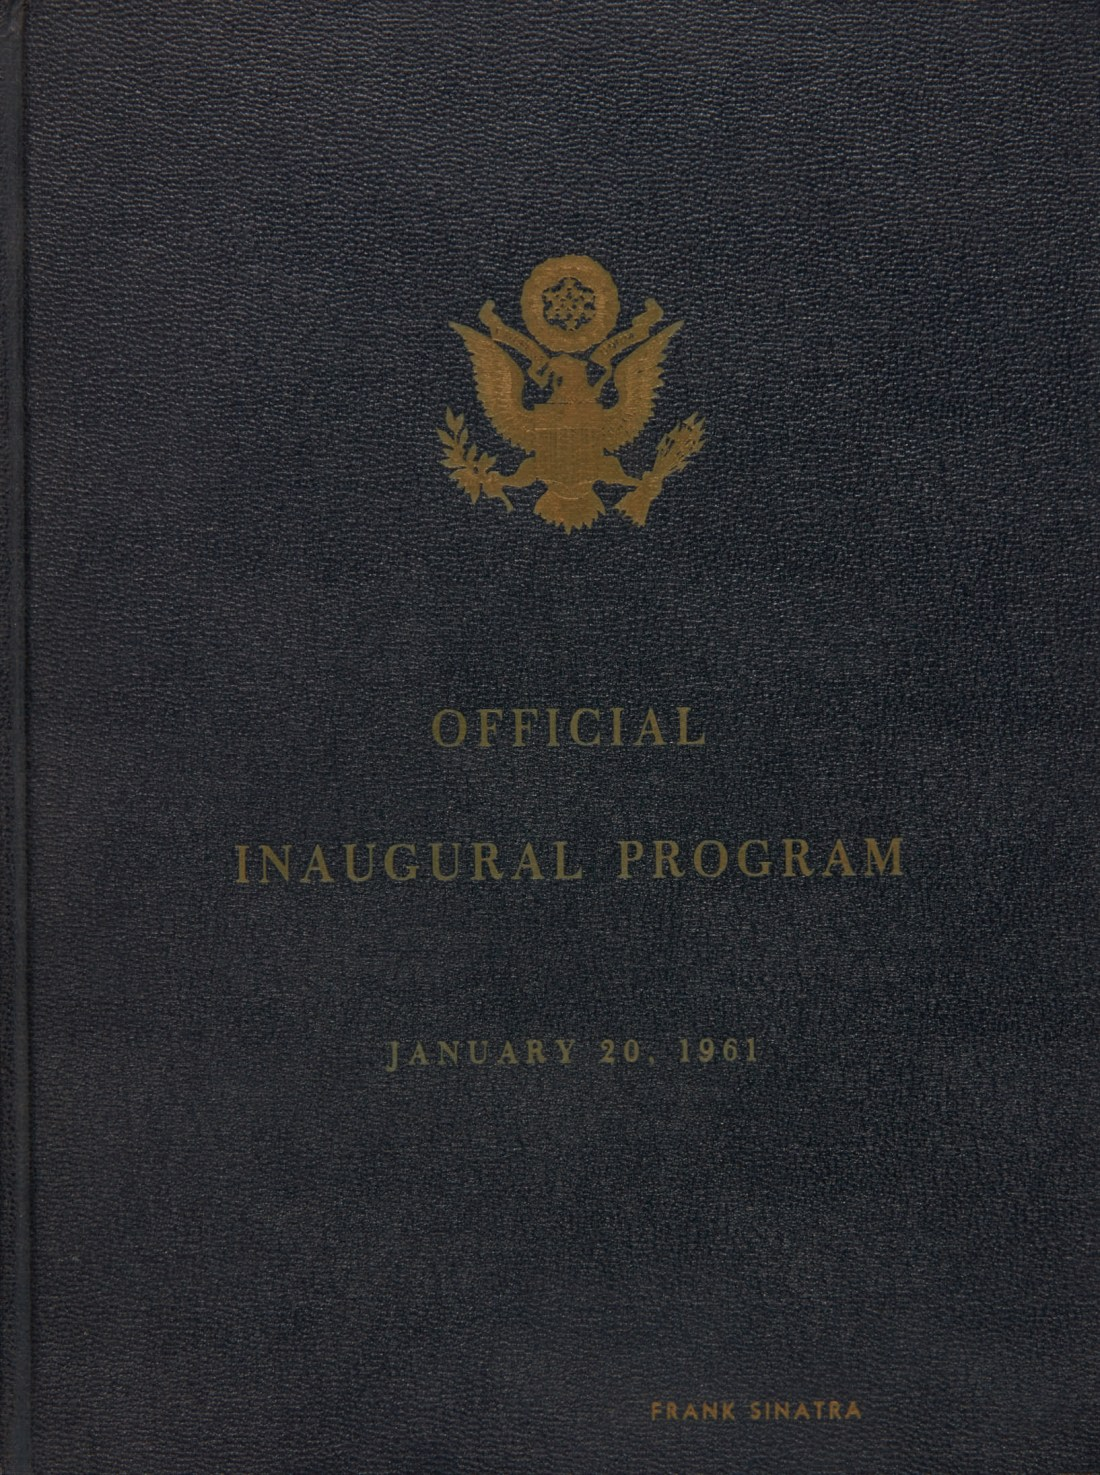 Frank Sinatra's copy of the deluxe limited edition of the 1961 official program of the inaugural ceremonies for President John F. Kennedy and Vice President Lyndon B. Johnson.